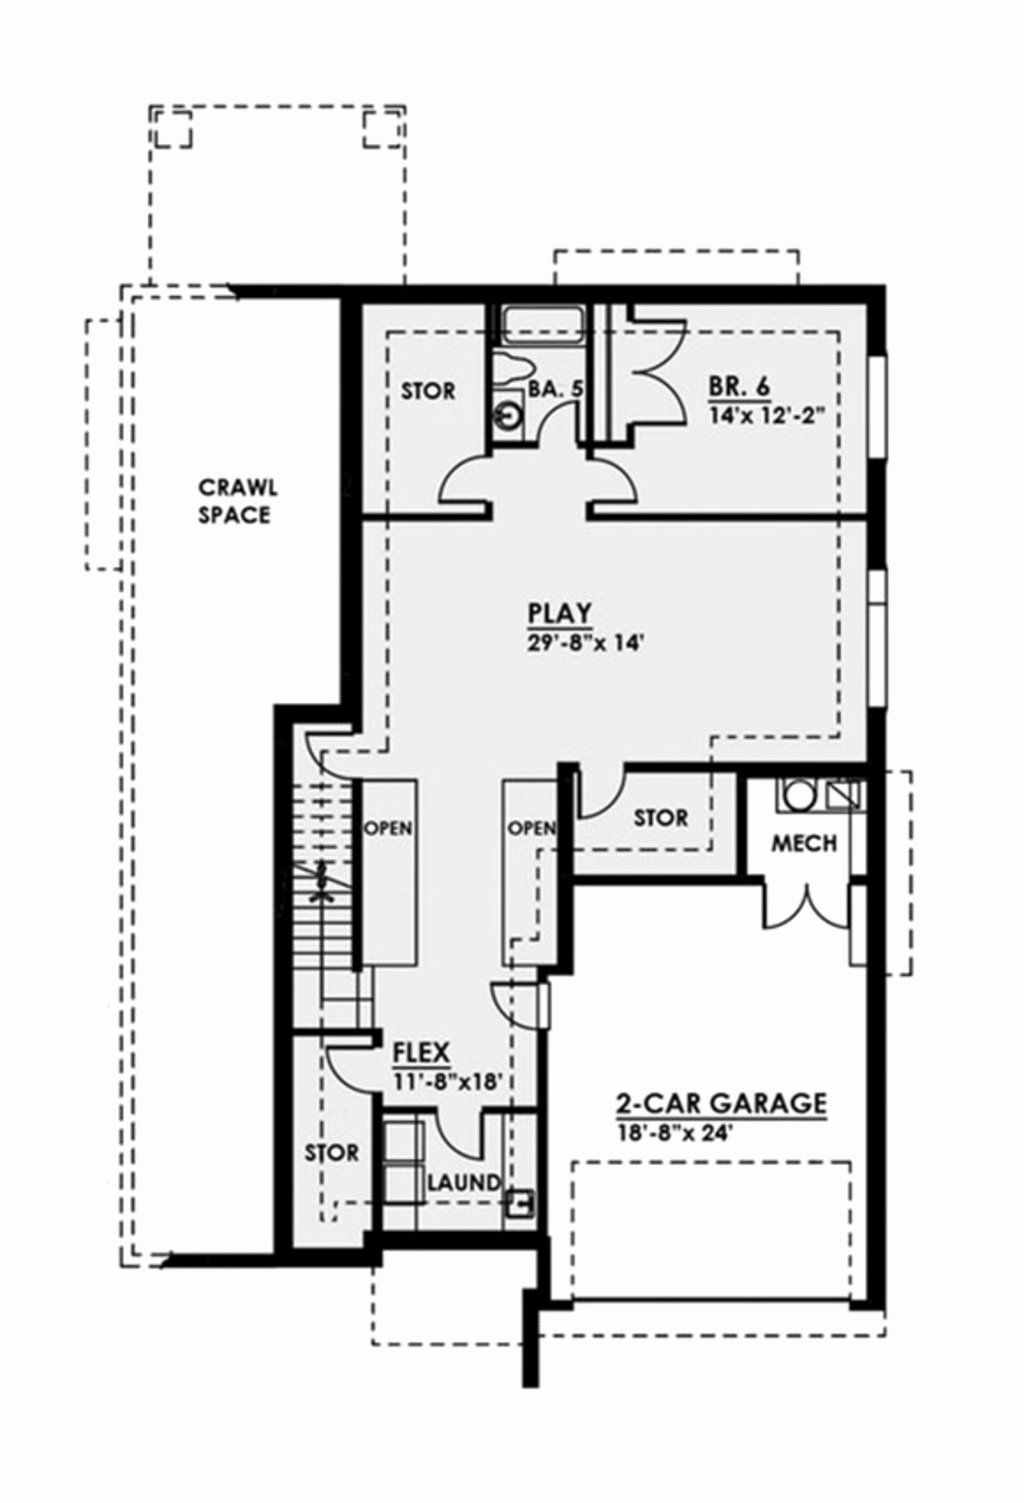 18 X 24 House Plans Unique Contemporary Style House Plan 6 Beds 5 5 Baths 5816 Sq Ft Plan 1066 38 In 2020 Modern Style House Plans House Plans Contemporary Style Homes